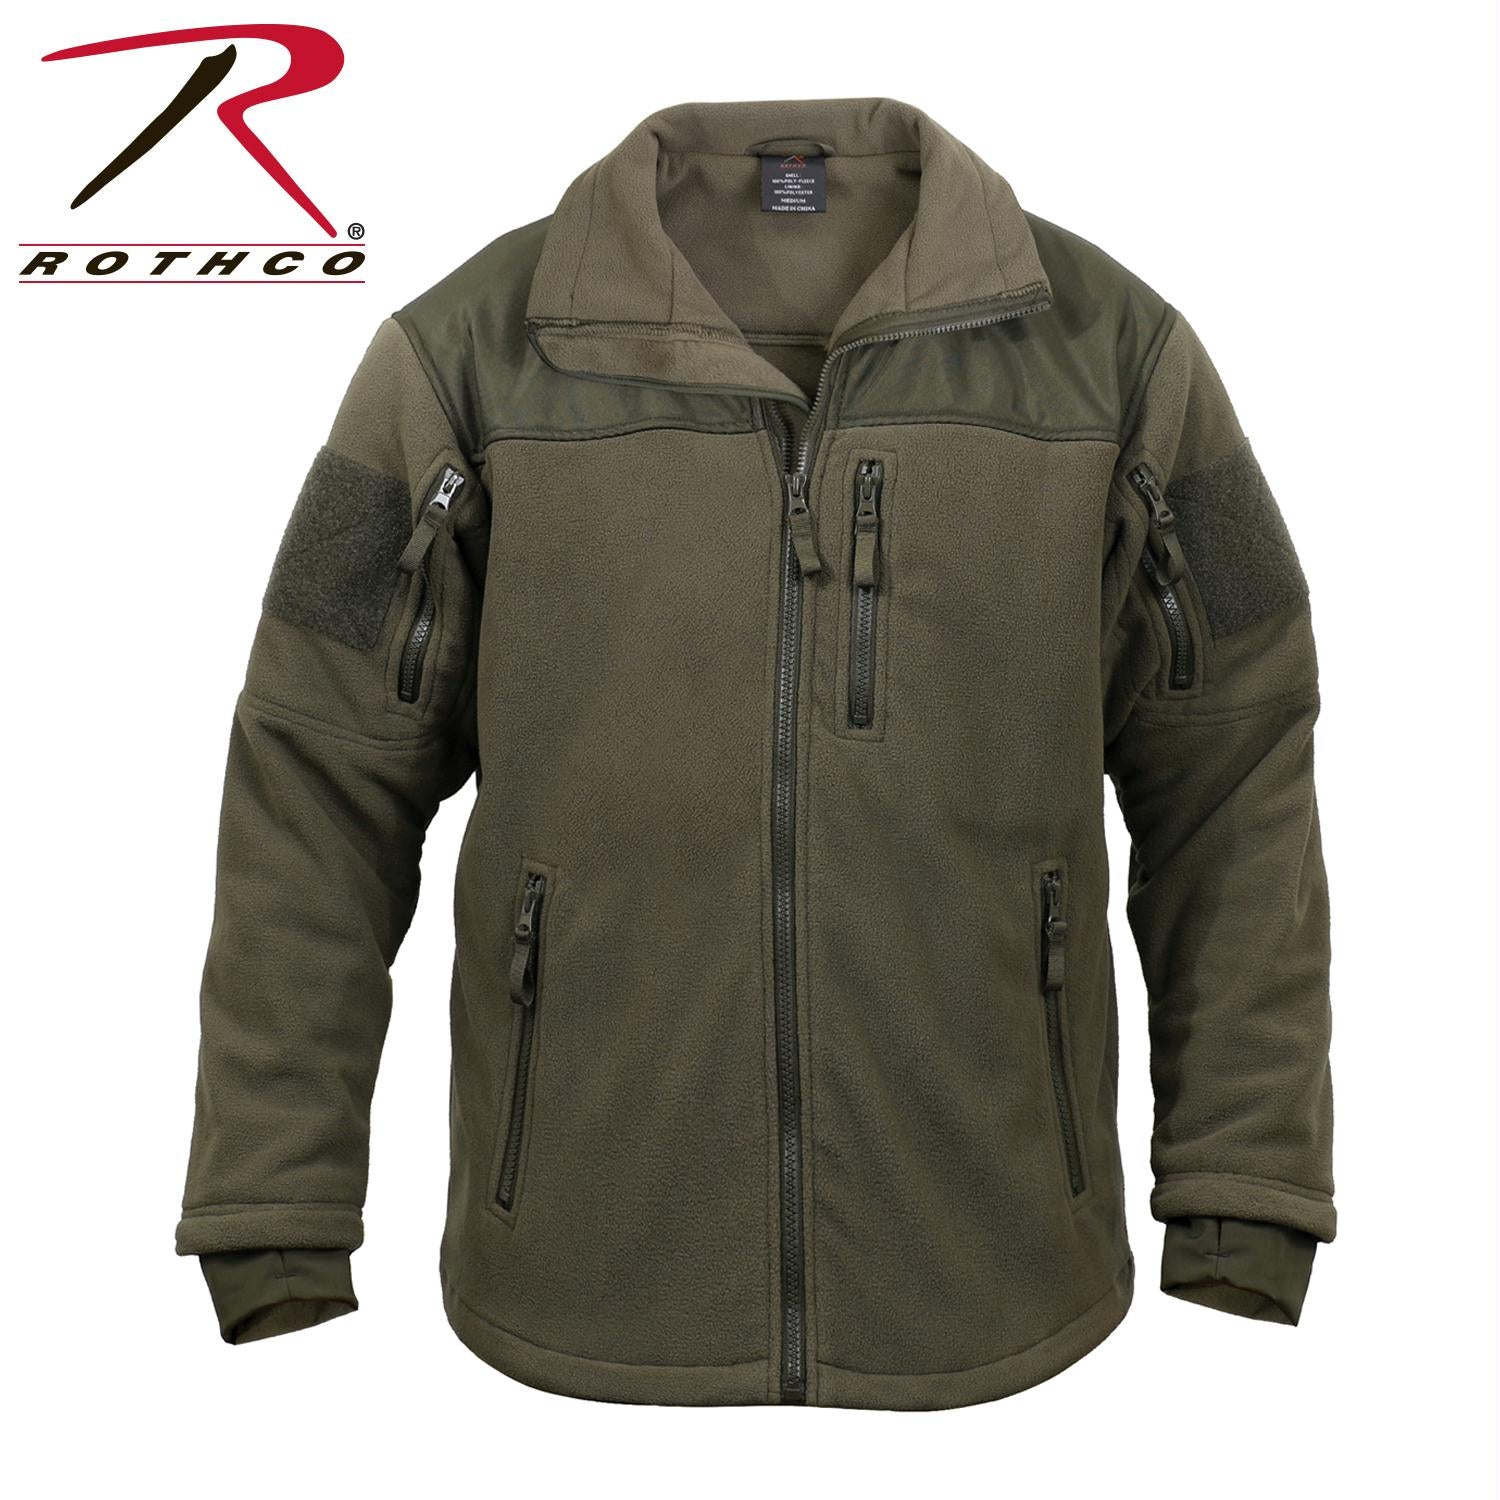 Rothco Spec Ops Tactical Fleece Jacket - Olive Drab / 2XL